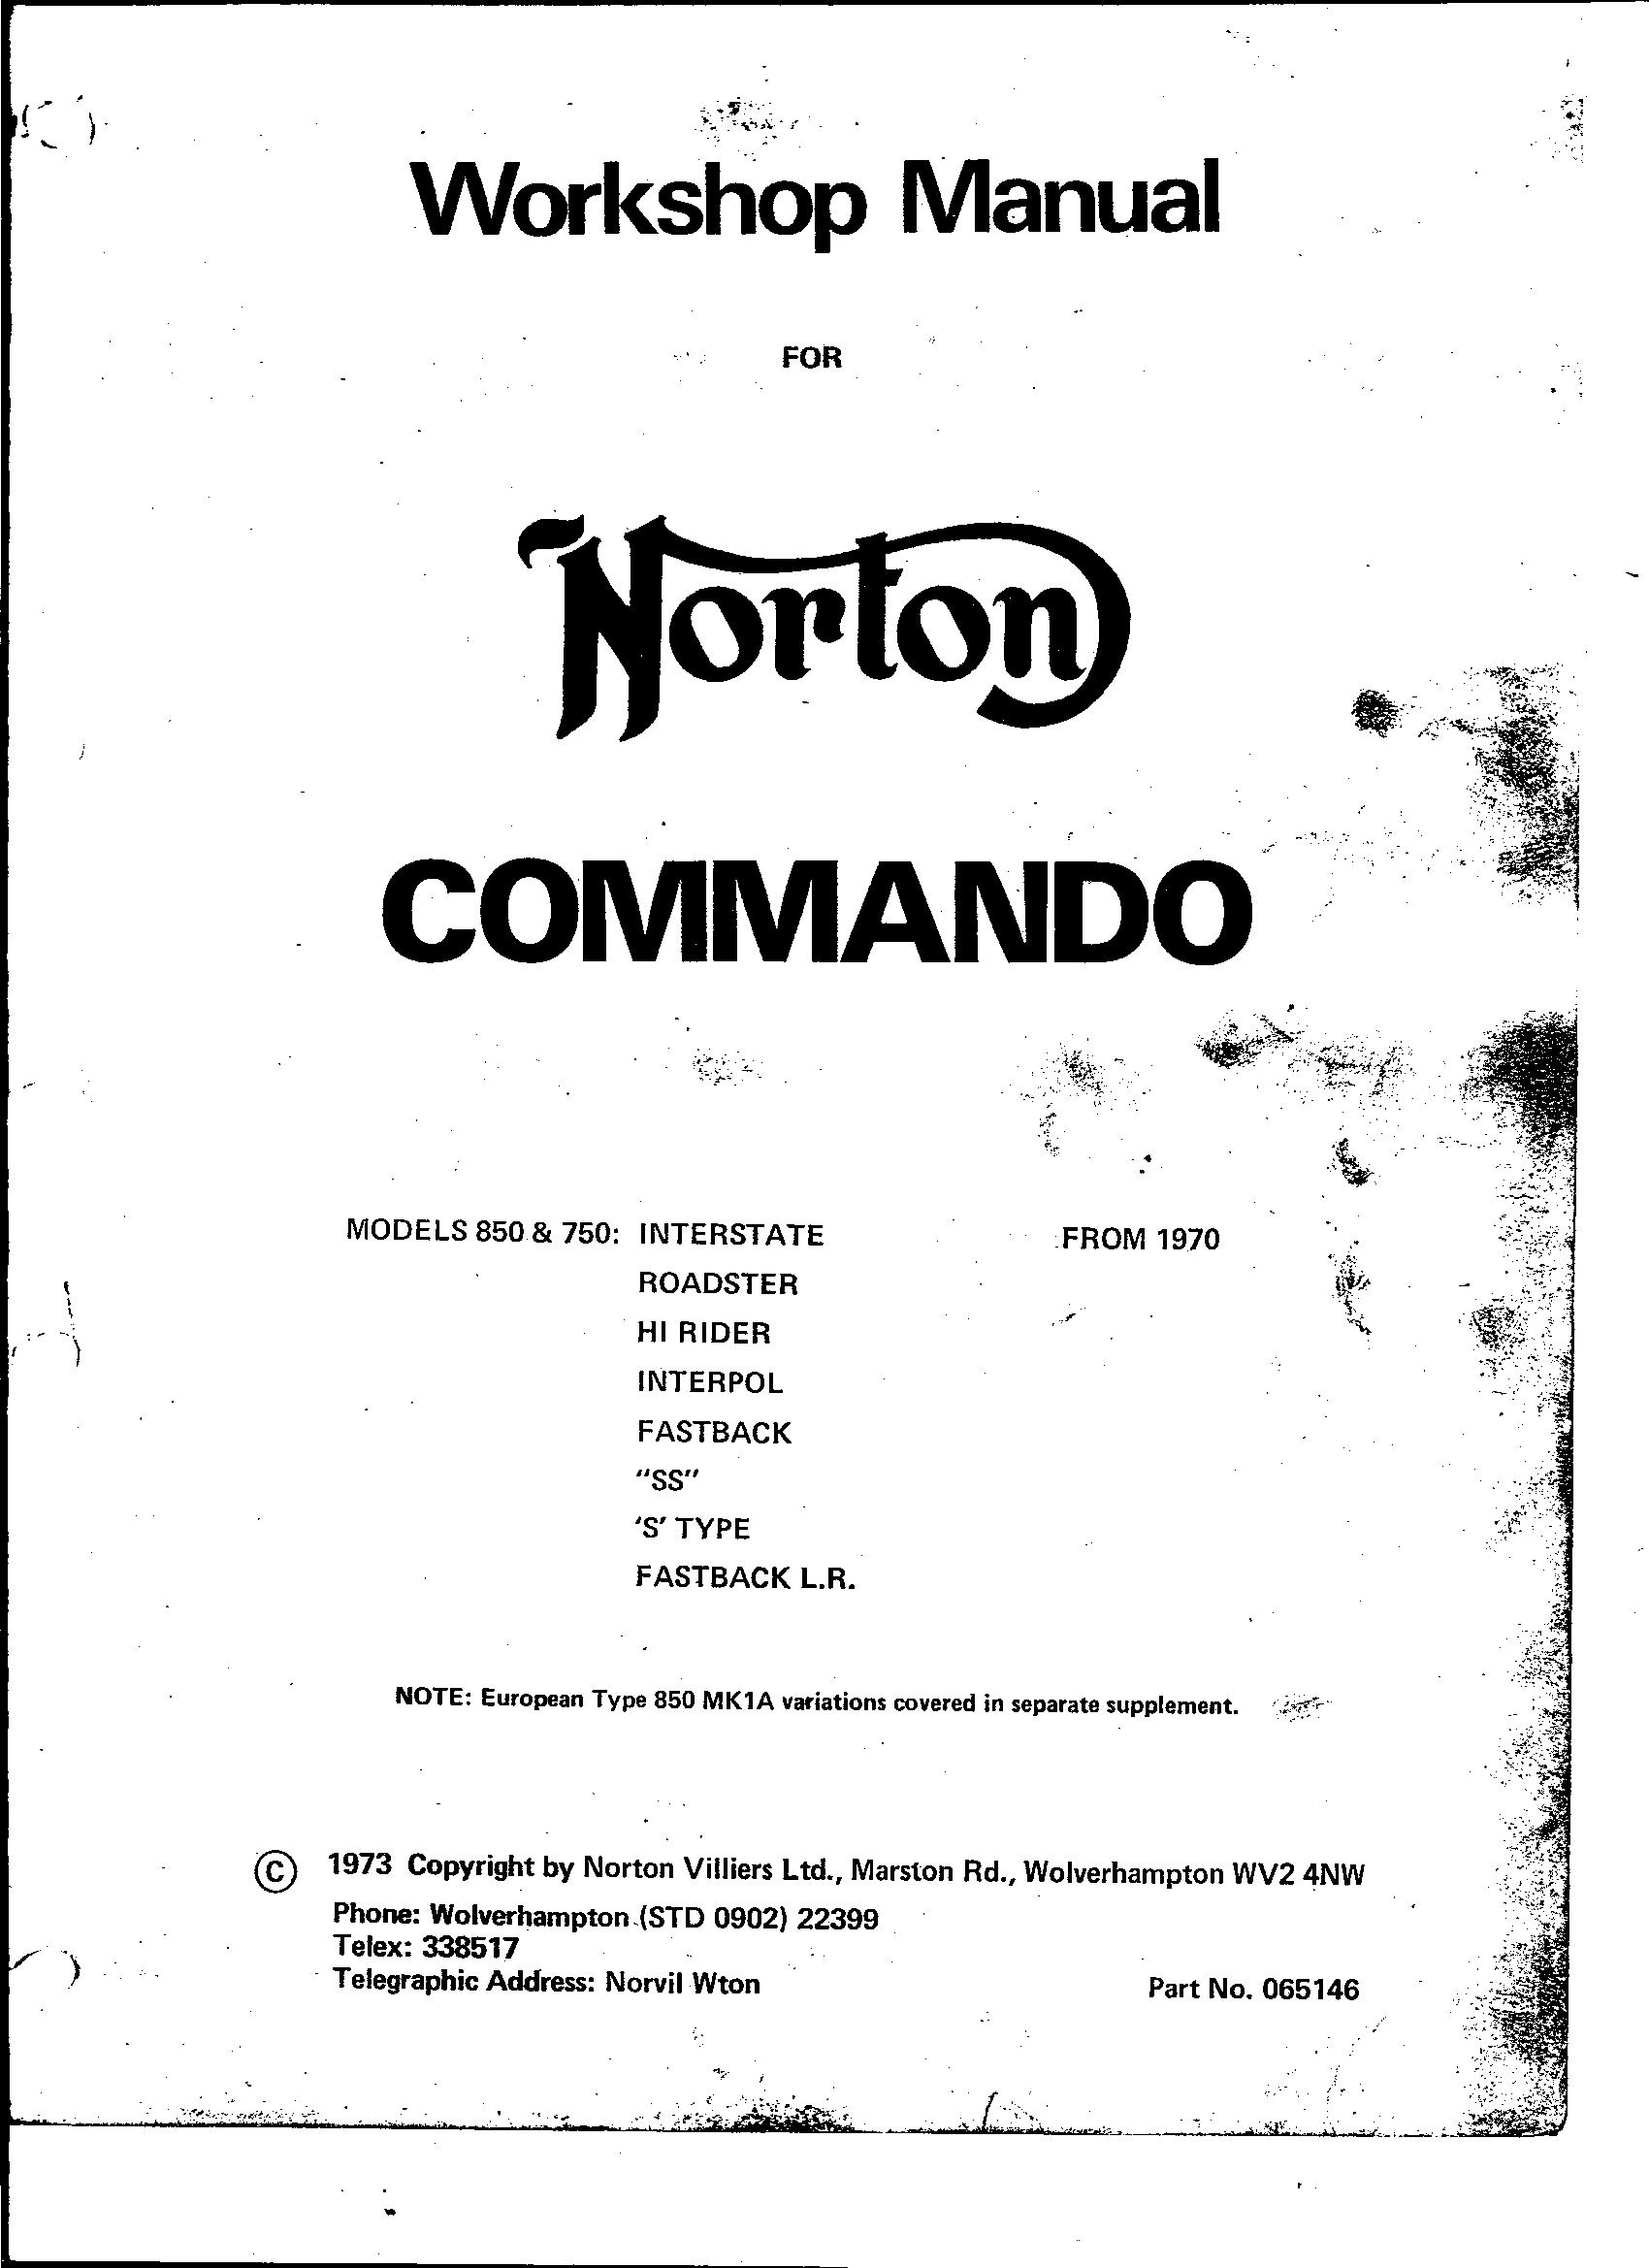 Norton Commando Workshop Manual